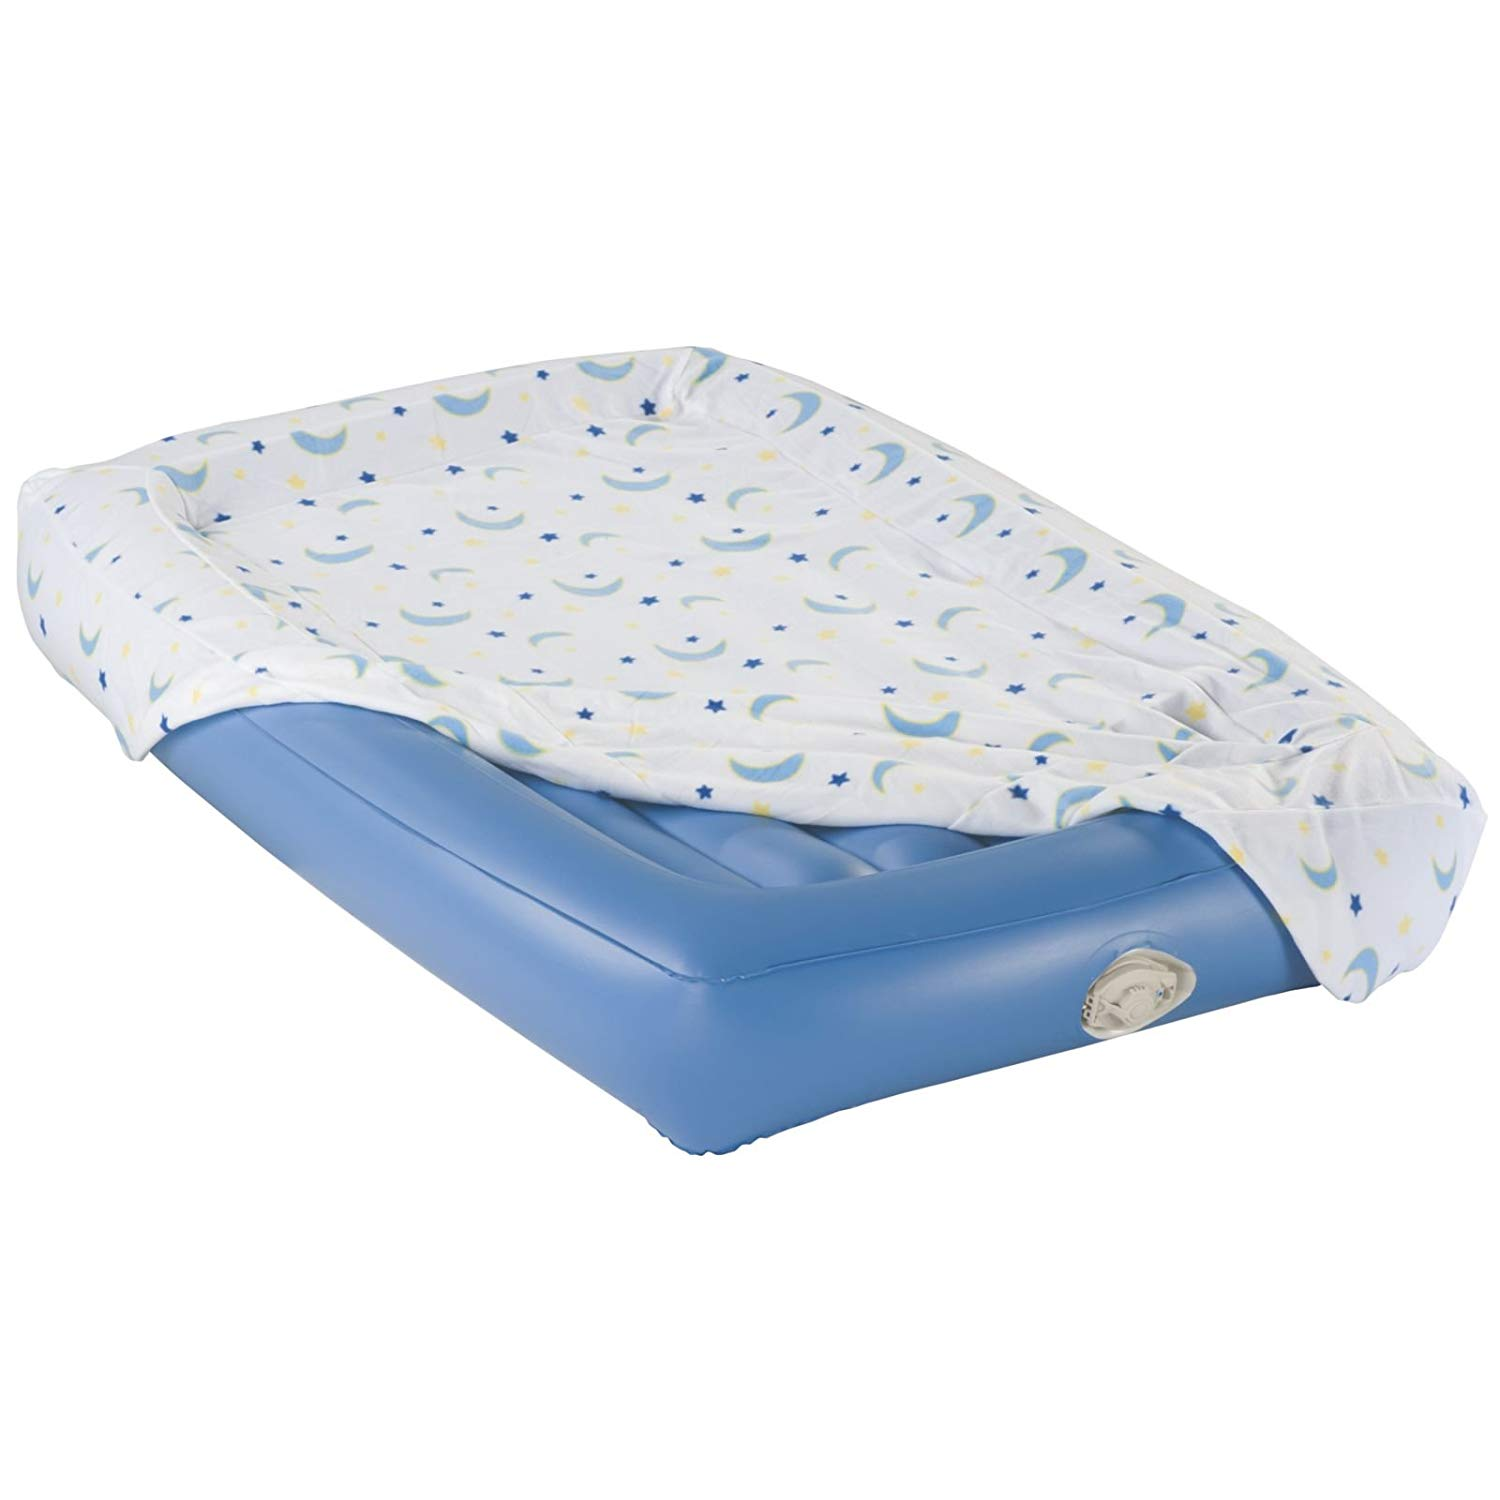 AeroBed Toddler Air Mattress Reviews by www.snoremagazine.com